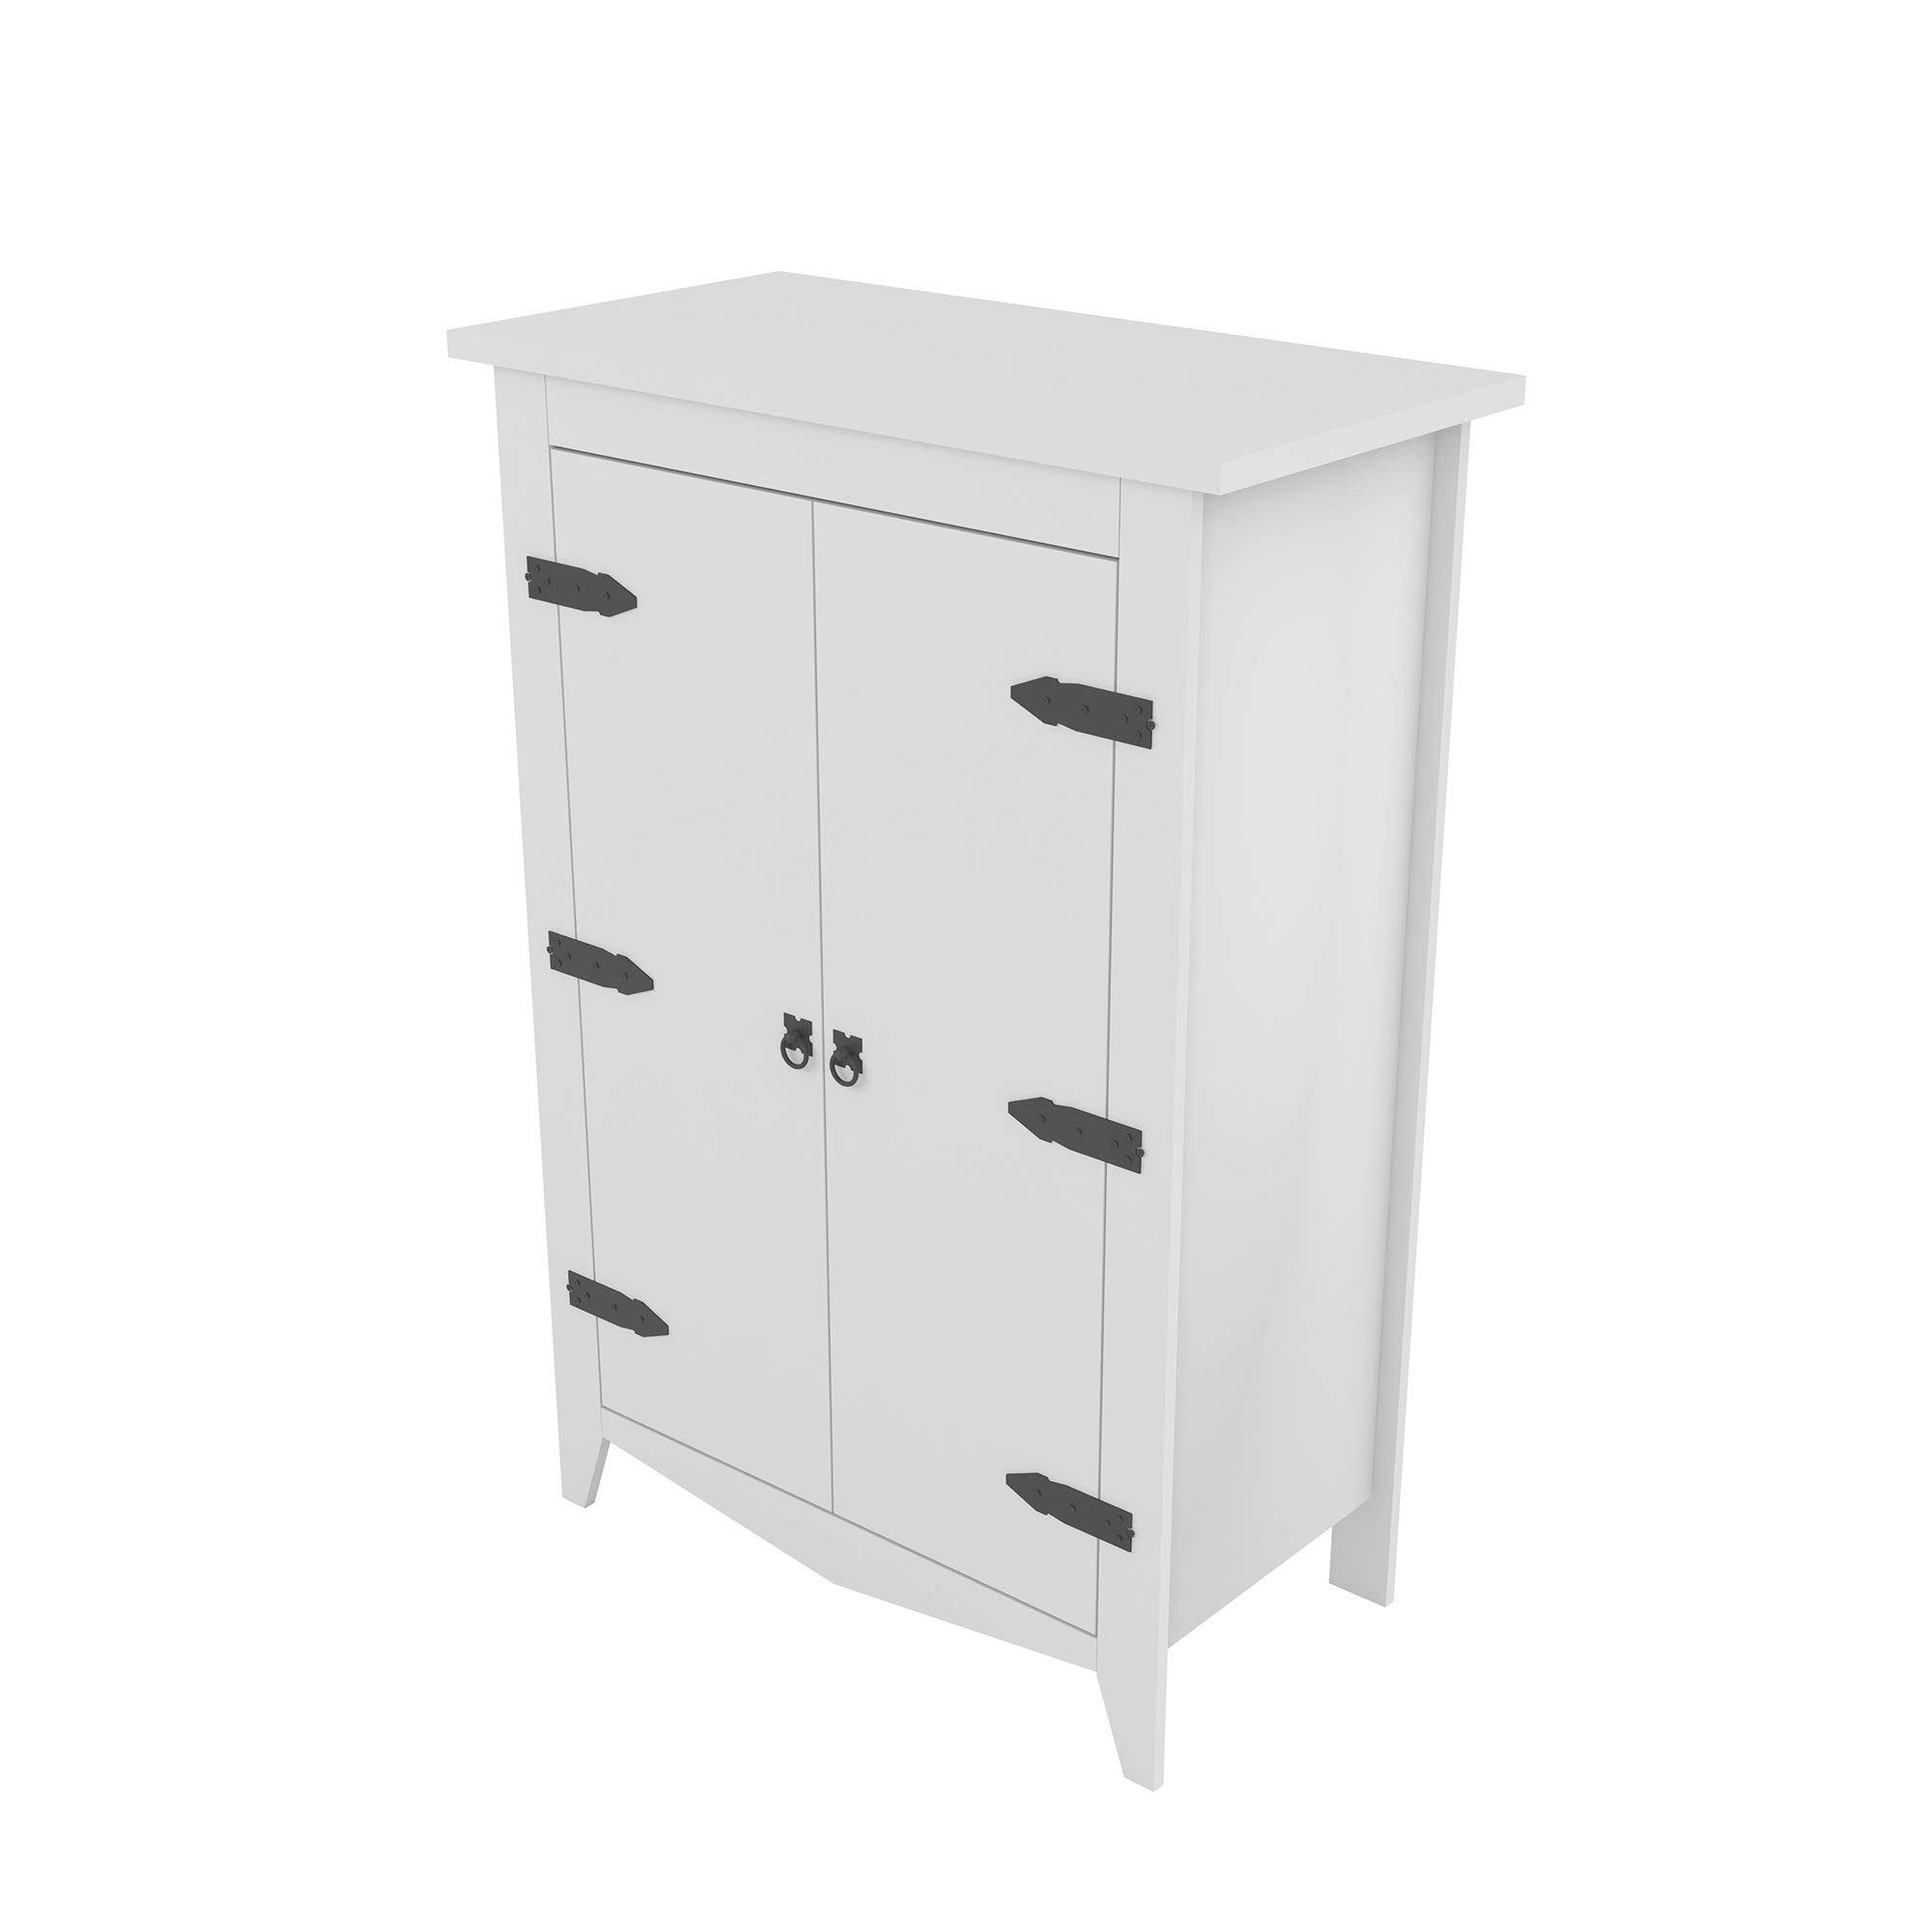 Armoire Storage Cabinet Classic Style Vintage Design Industrial (White)